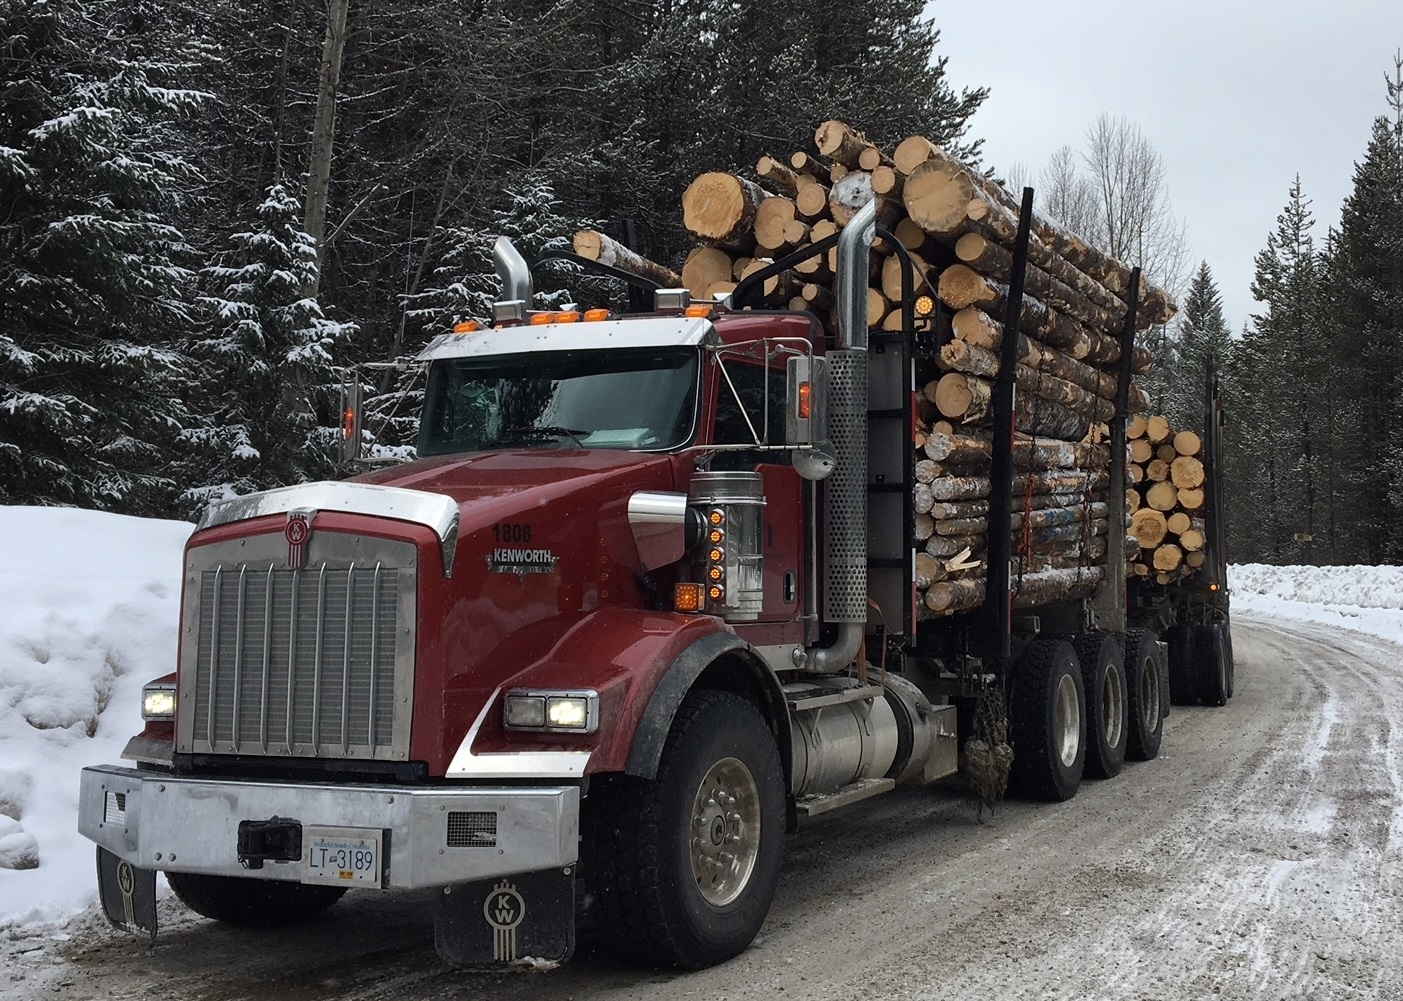 Pacific International Log Trading Inc in Delta: Our Log Trucks will move the wood.  Long log and short log trailer configurations, Short log trucks are pulling Quad and Super B trailers.  Long log trucks pull Triaxle and Tridem trailers.